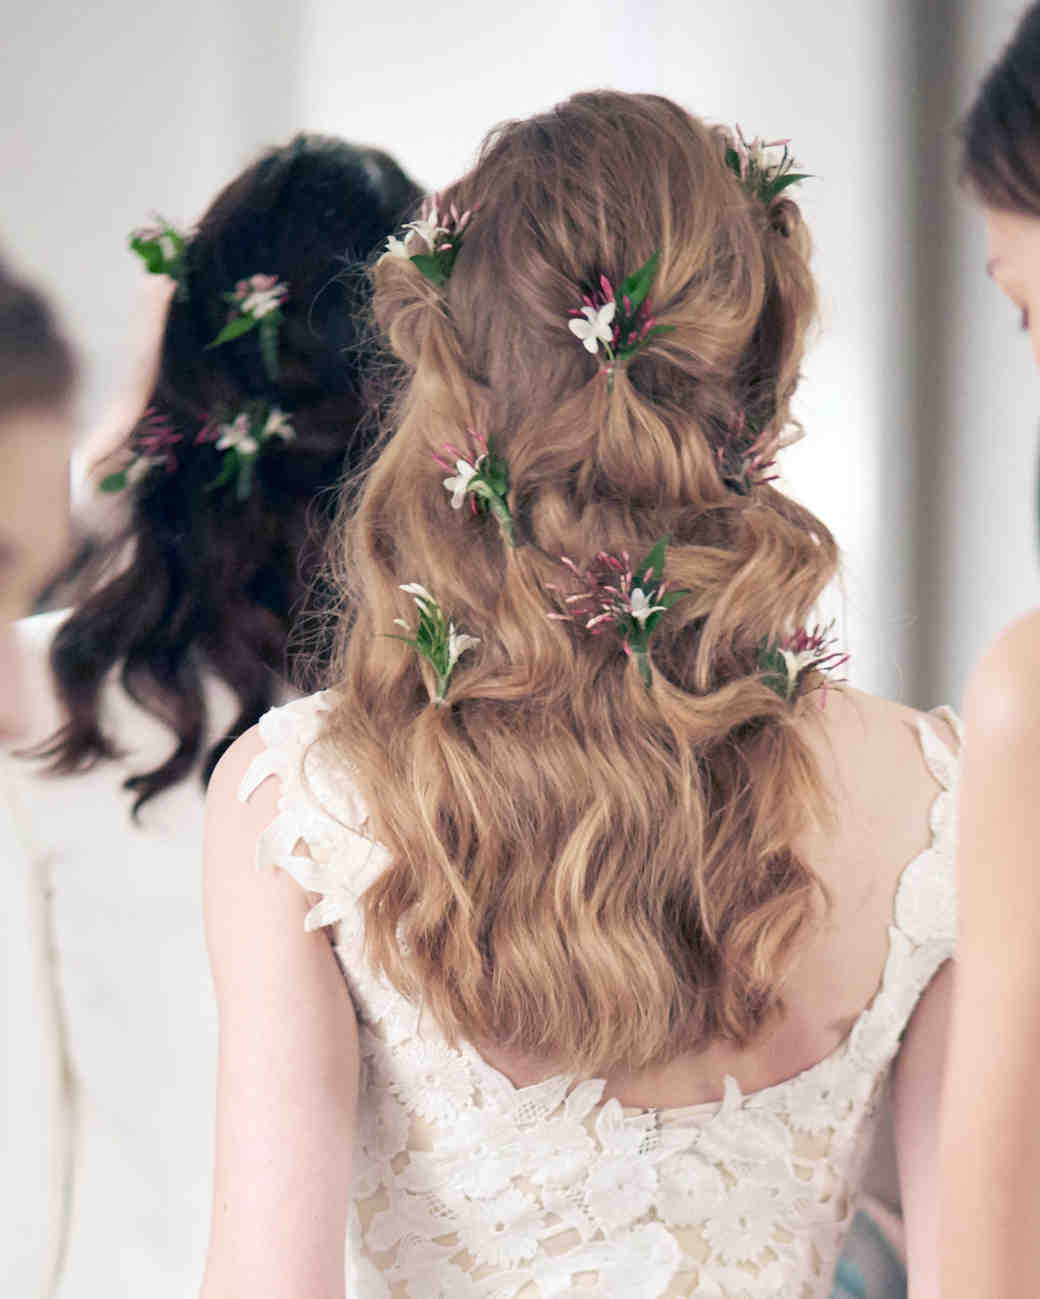 Wedding Bridesmaid Hairstyles For Long Hair: 96 Fun Facts About Your Favorite Bridal Designers